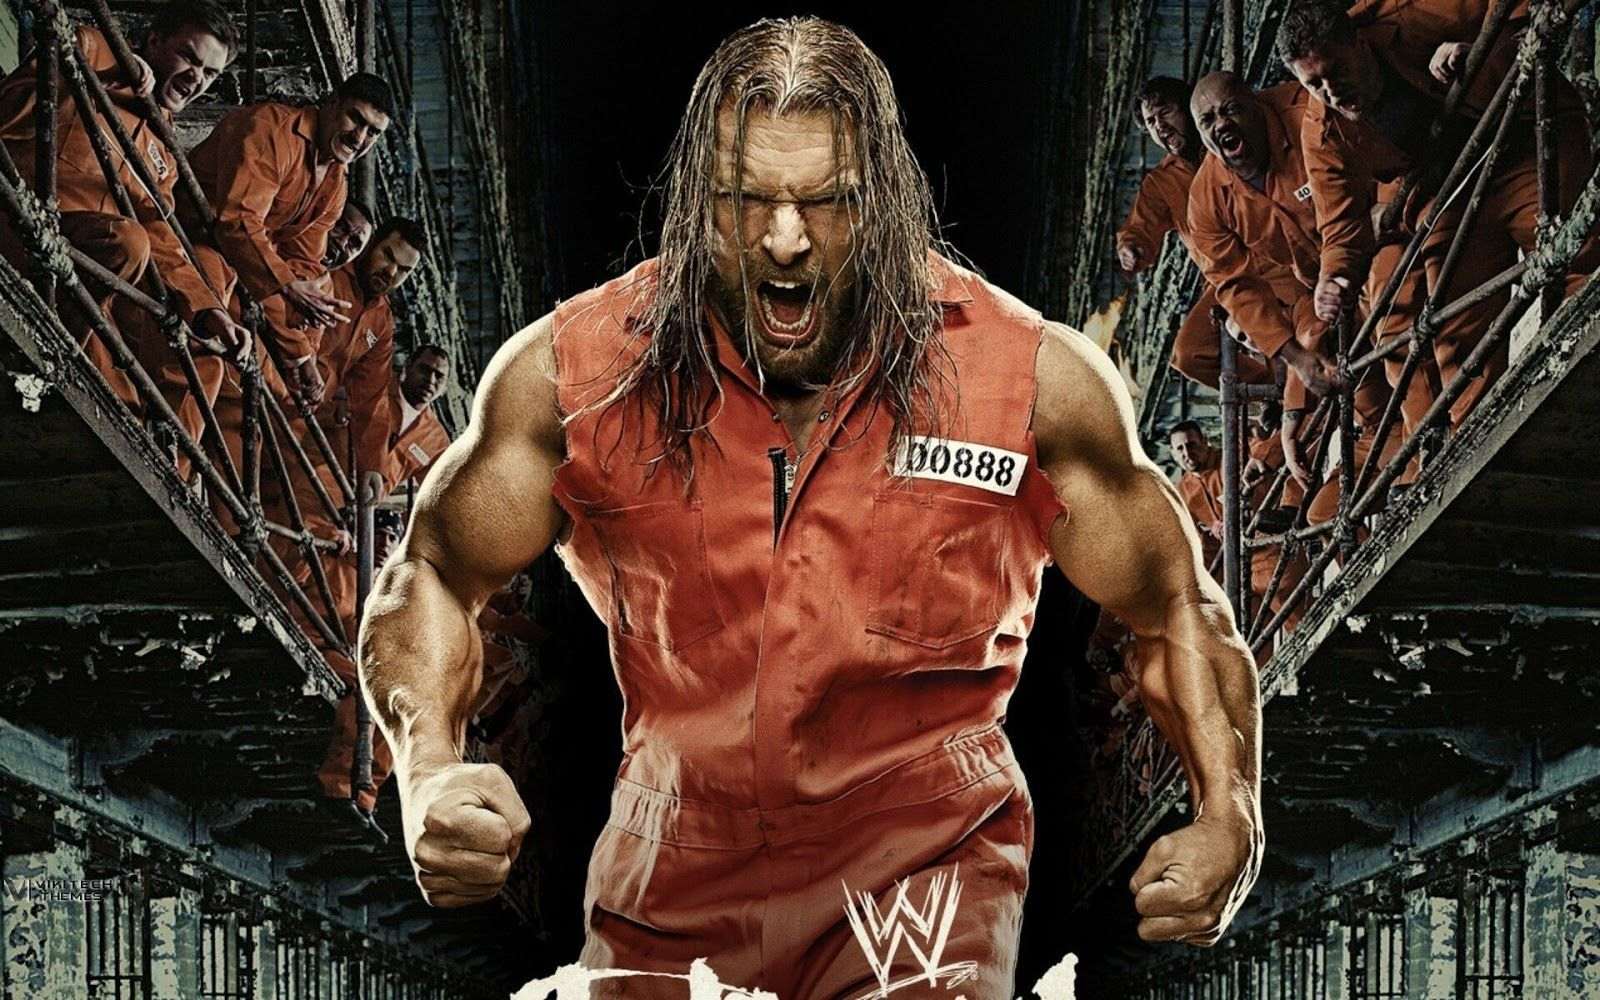 wwe hd wallpapers 10 | wwe hd wallpapers | pinterest | wwe